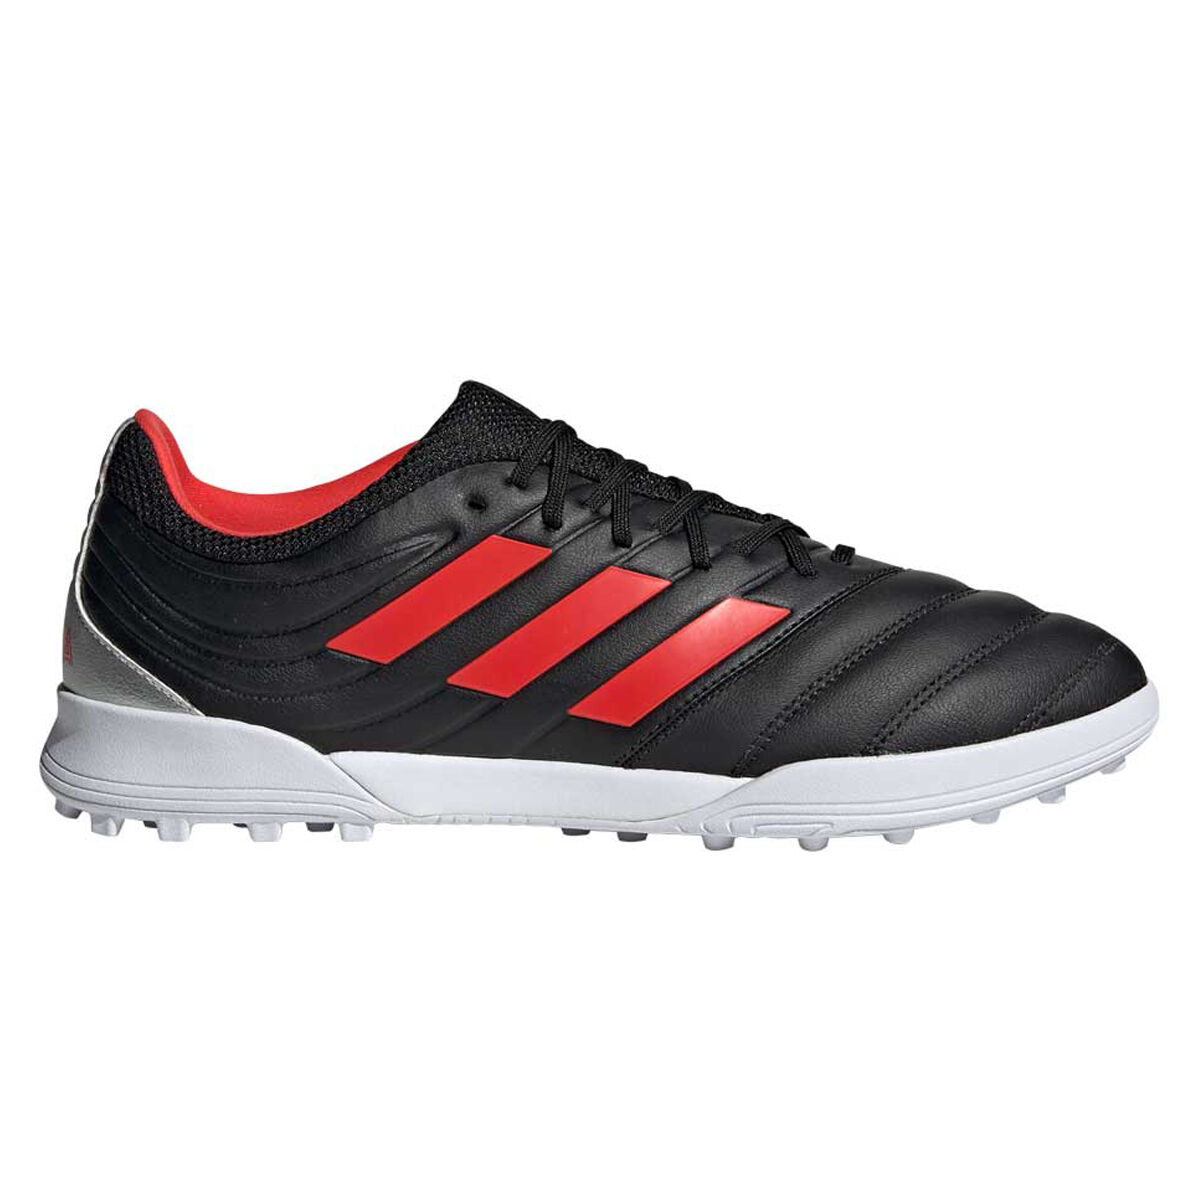 adidas Copa 19.3 Touch and Turf Boots